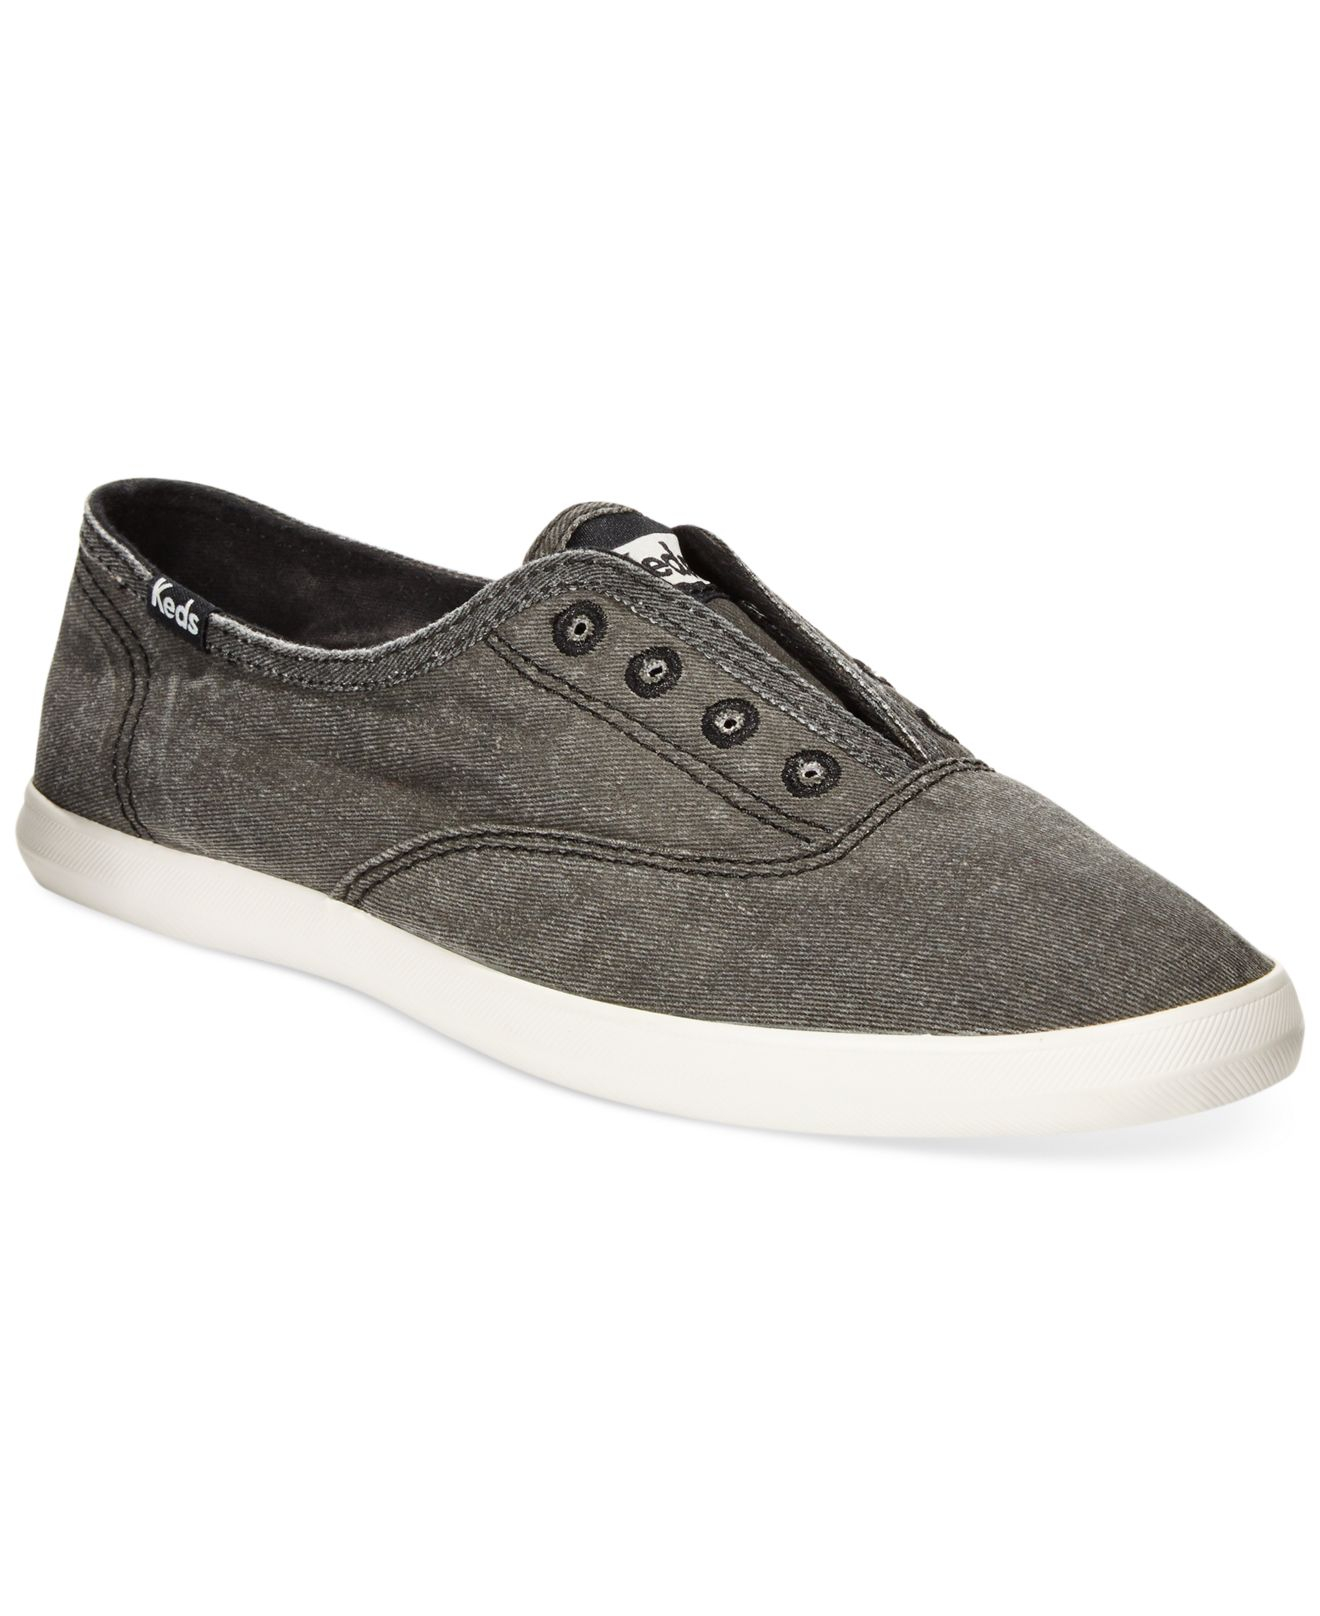 Women's Sneakers: Free Shipping on orders over $45 at Find the latest styles of Shoes from archivesnapug.cf Your Online Women's Shoes Store! Get 5% in rewards with Club O!